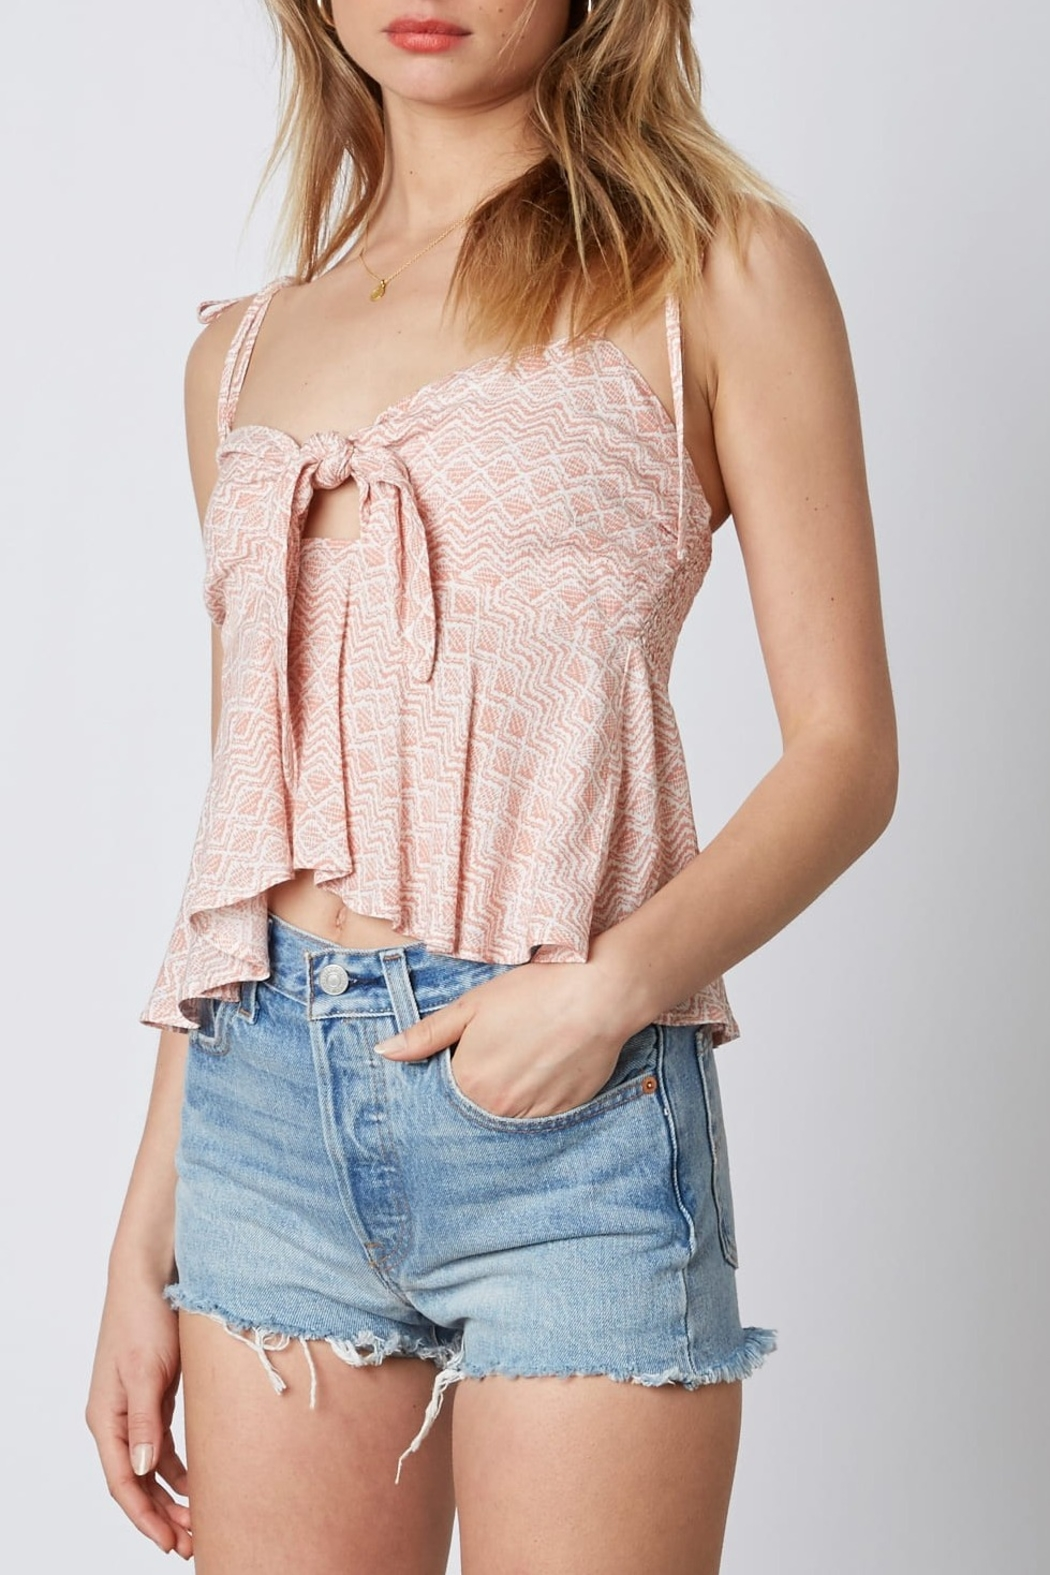 Cotton Candy LA Knot Front Top - Front Full Image